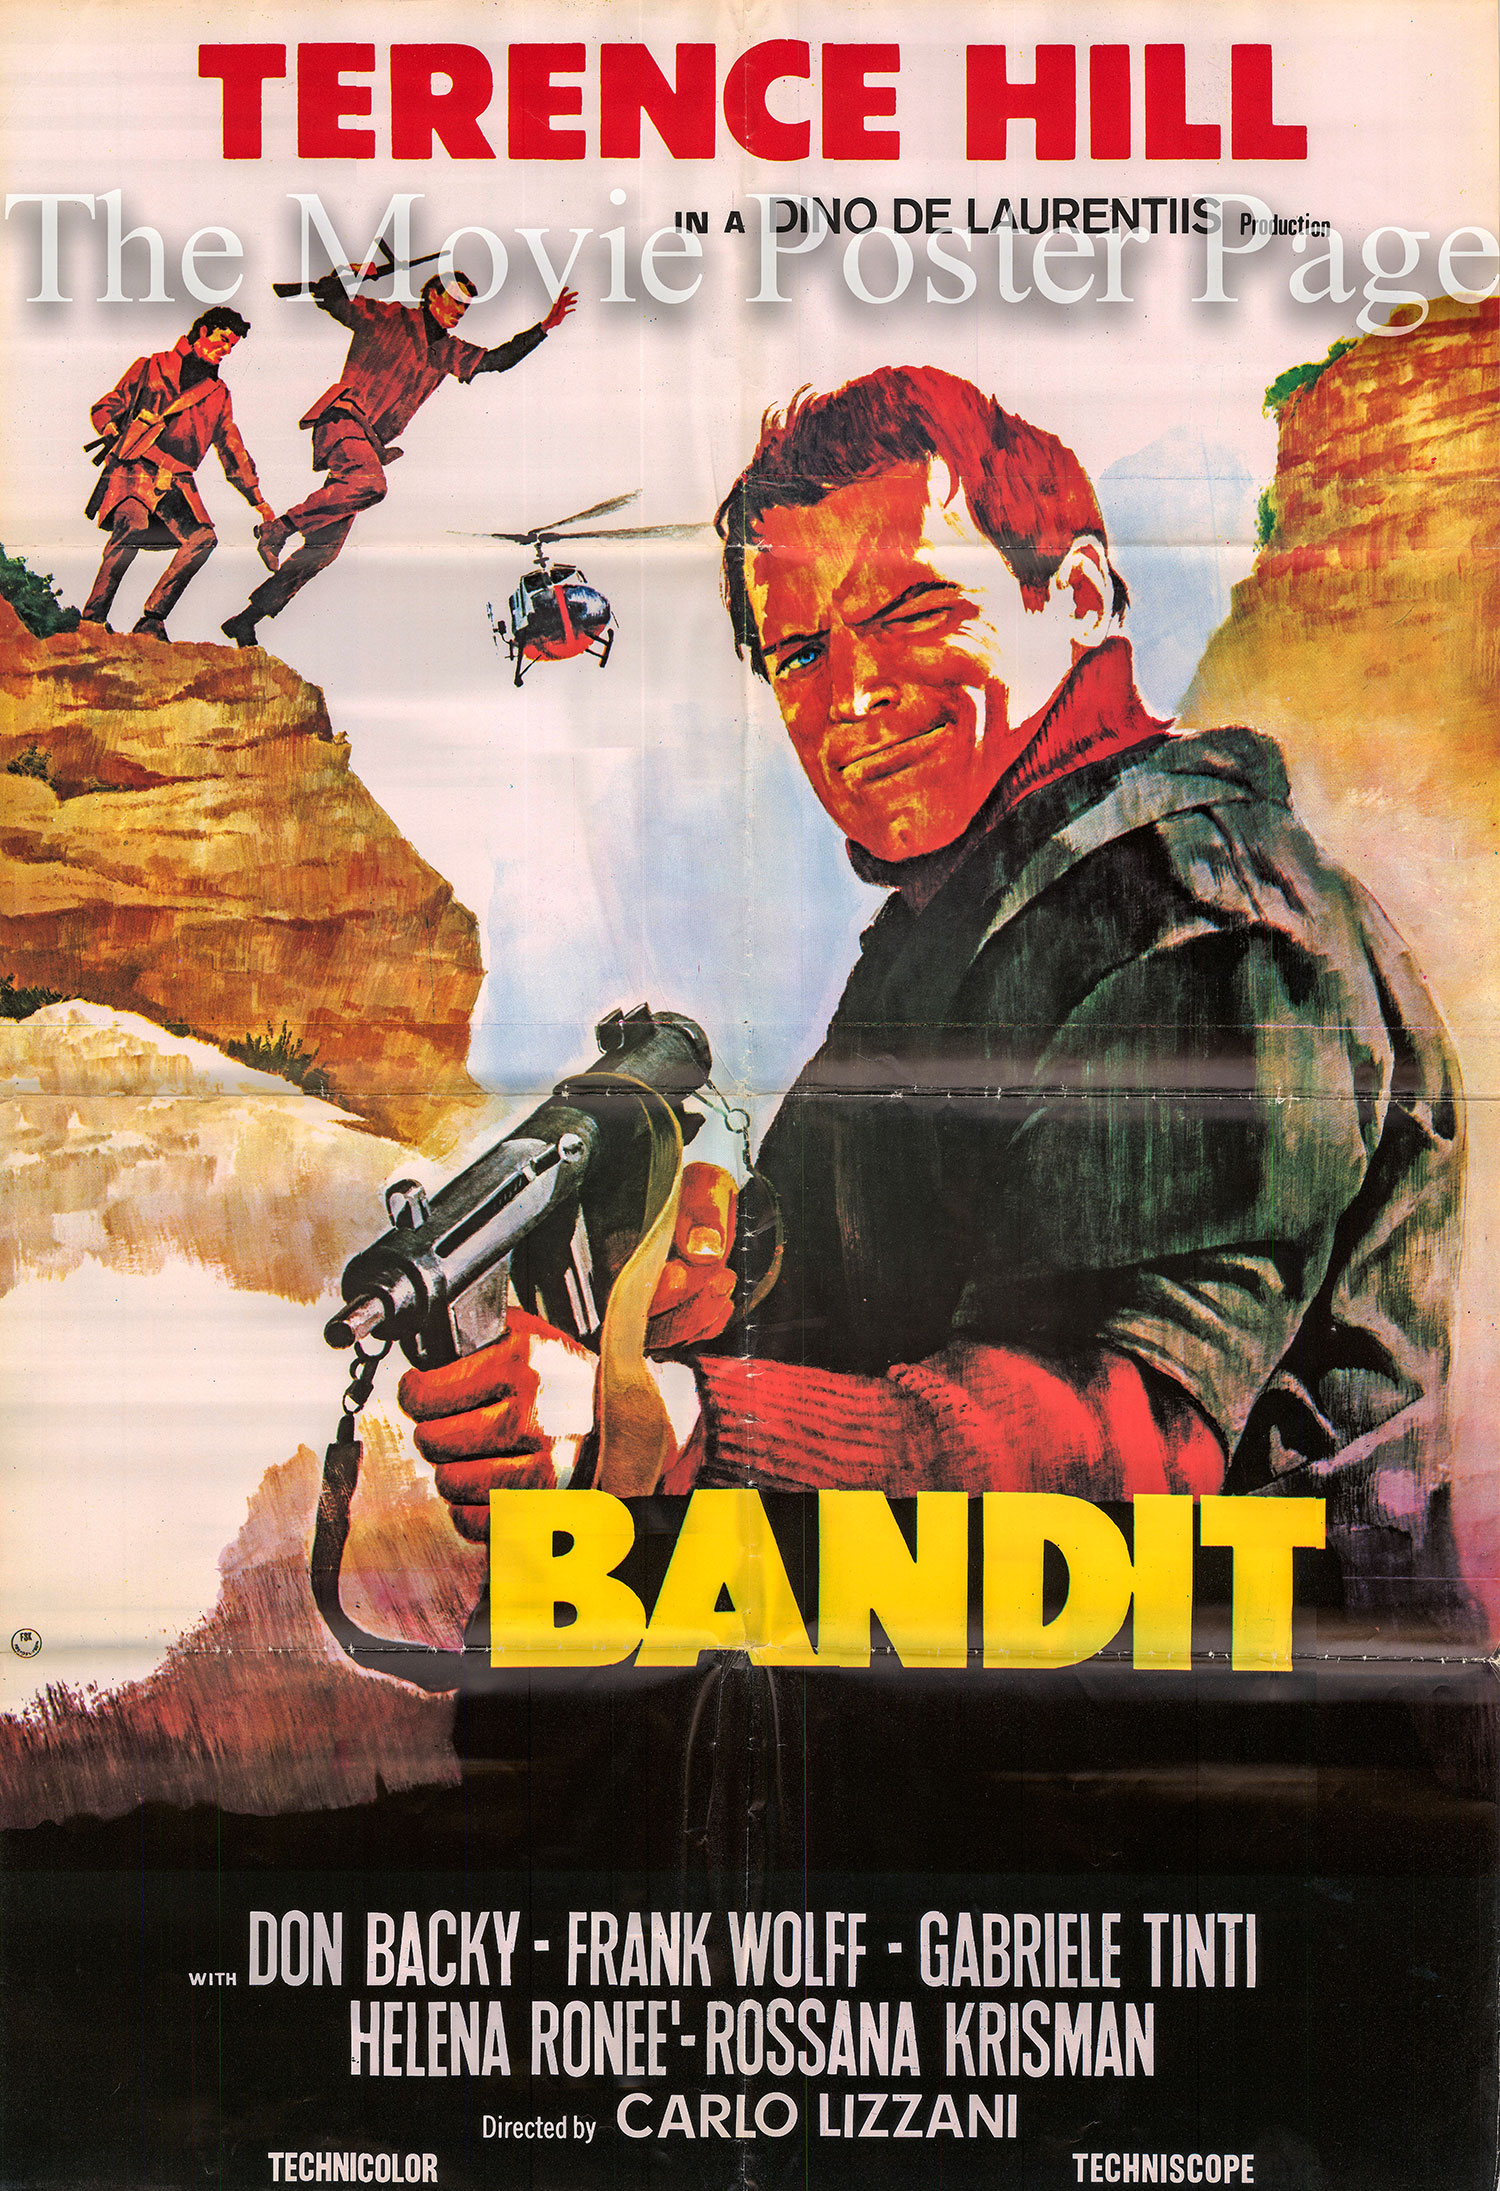 Pictured is an Italian one-sheet poster for the 1969 Carlo Lizzani film Bandit starring Terence Hill.